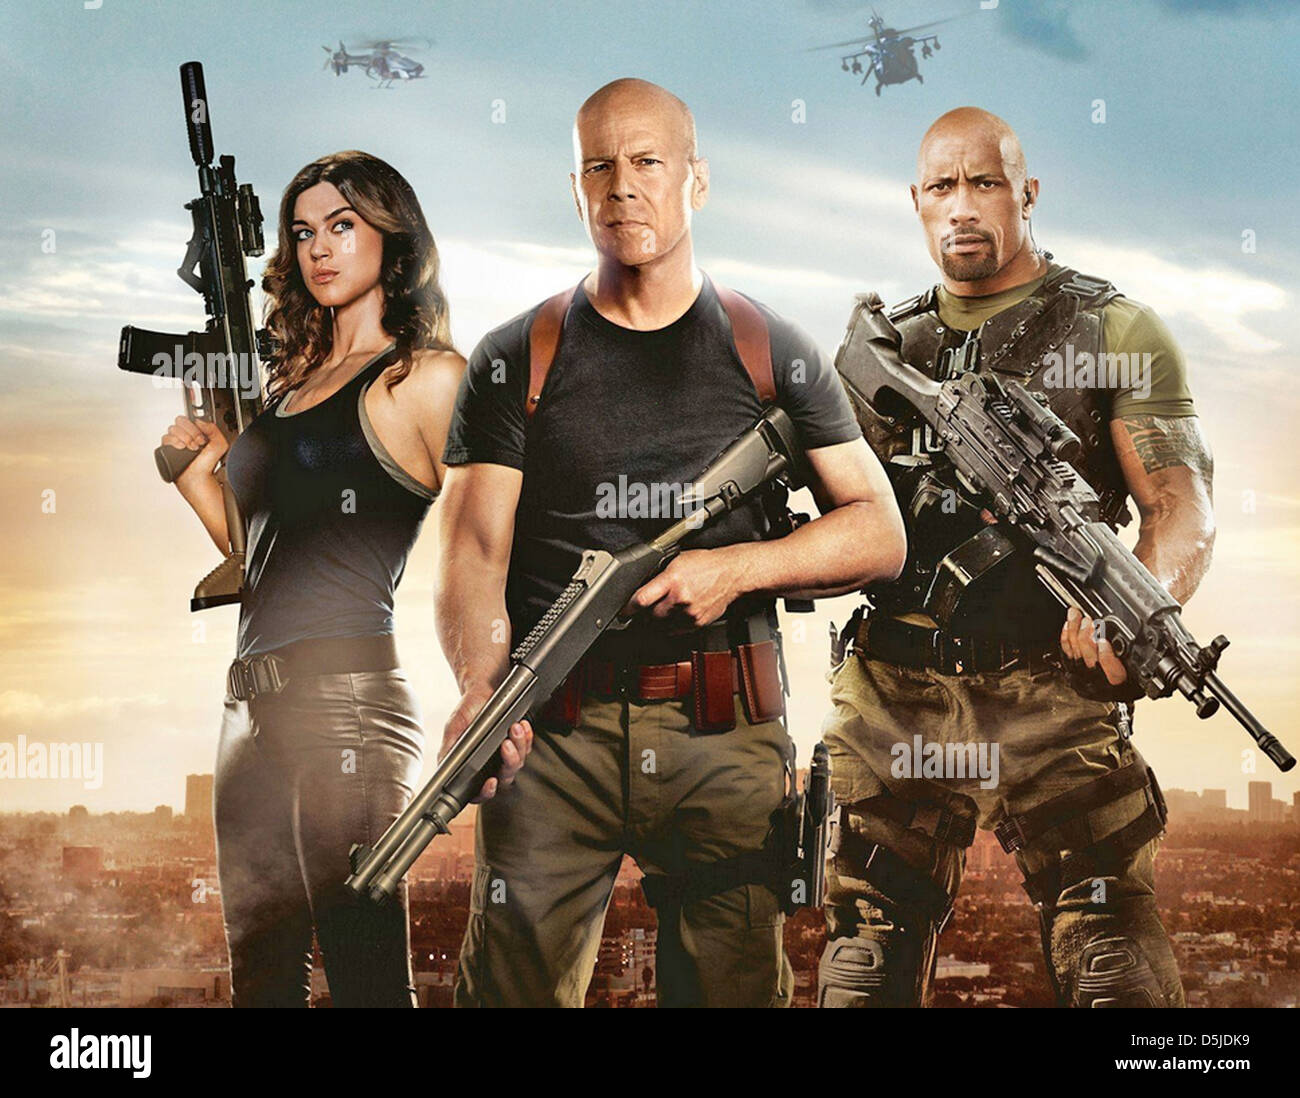 G.I. JOE: RETALIATION 2013 Paramount Pictures film with from left AdriannePalicki, Bruce Willis, The Rock - Stock Image